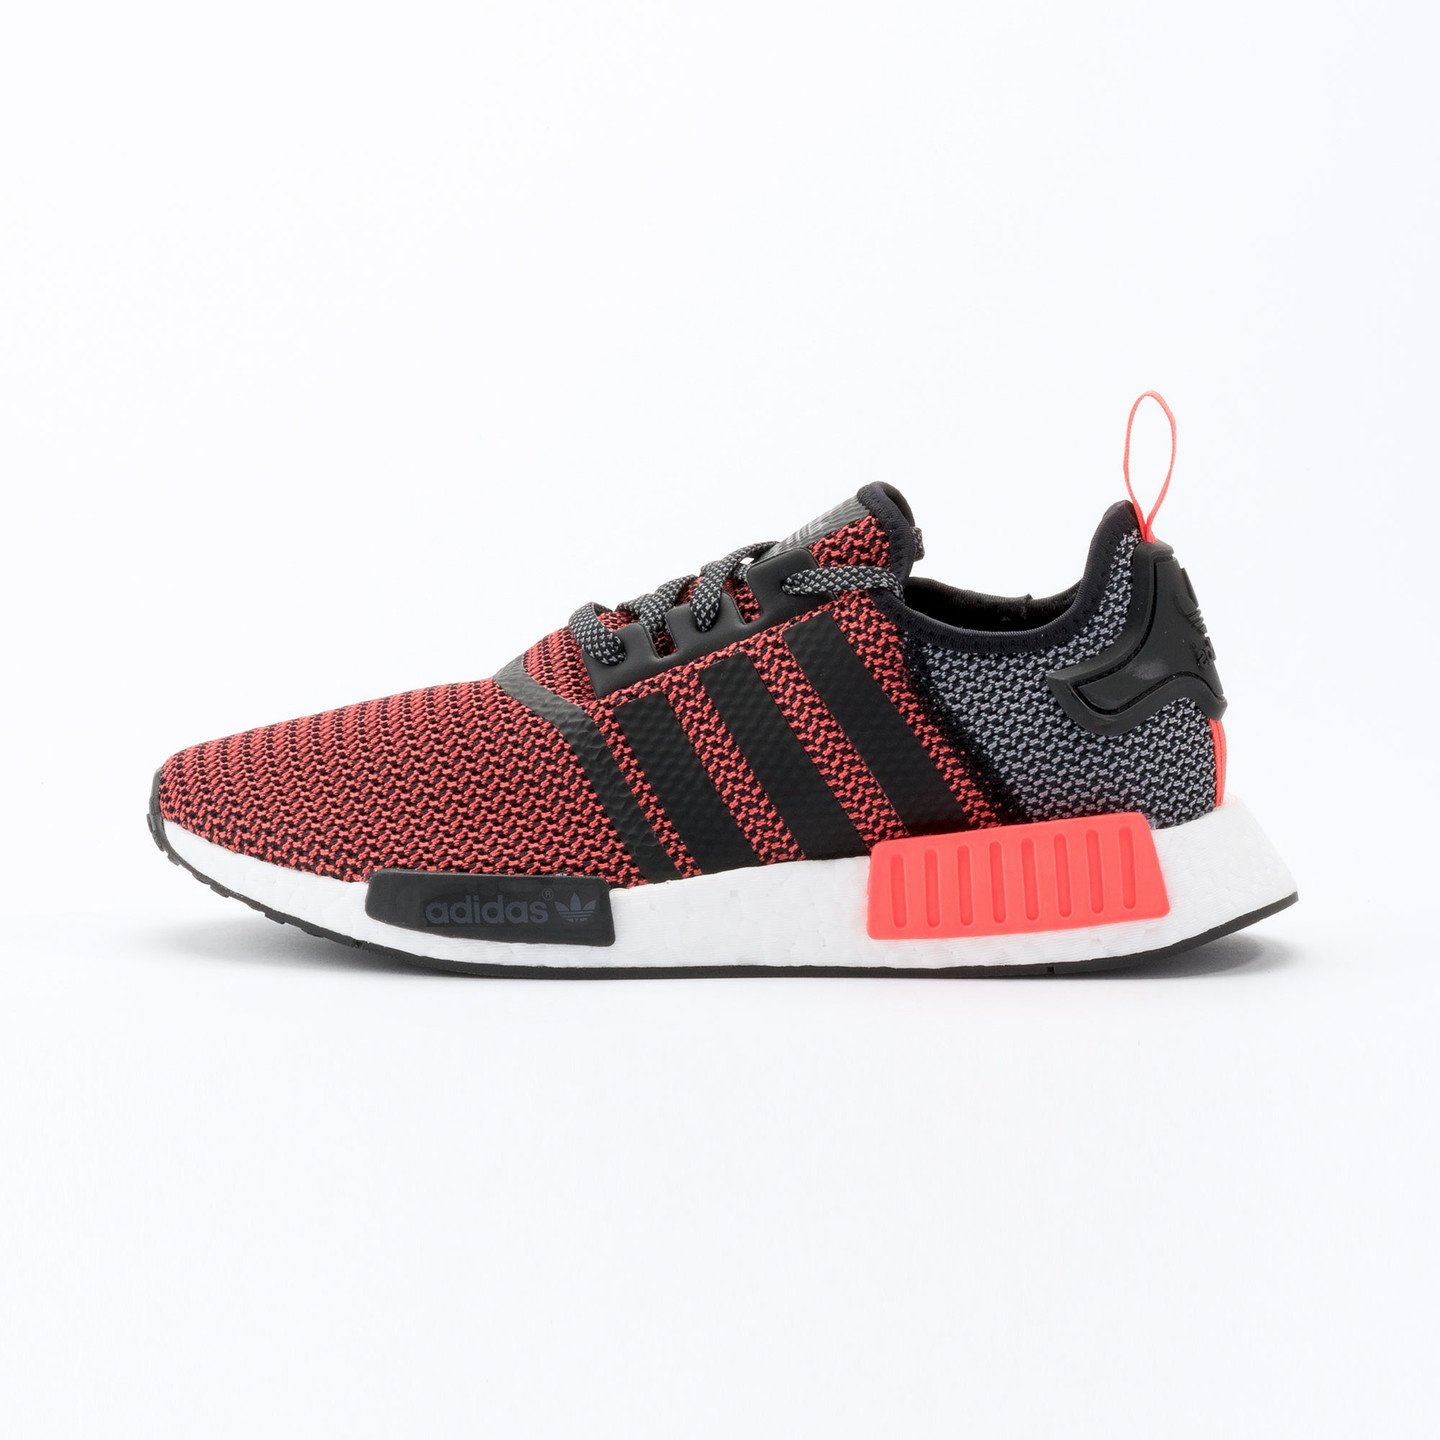 Adidas NMD R1 Runner Lush Red / Core Black S79158-41.33